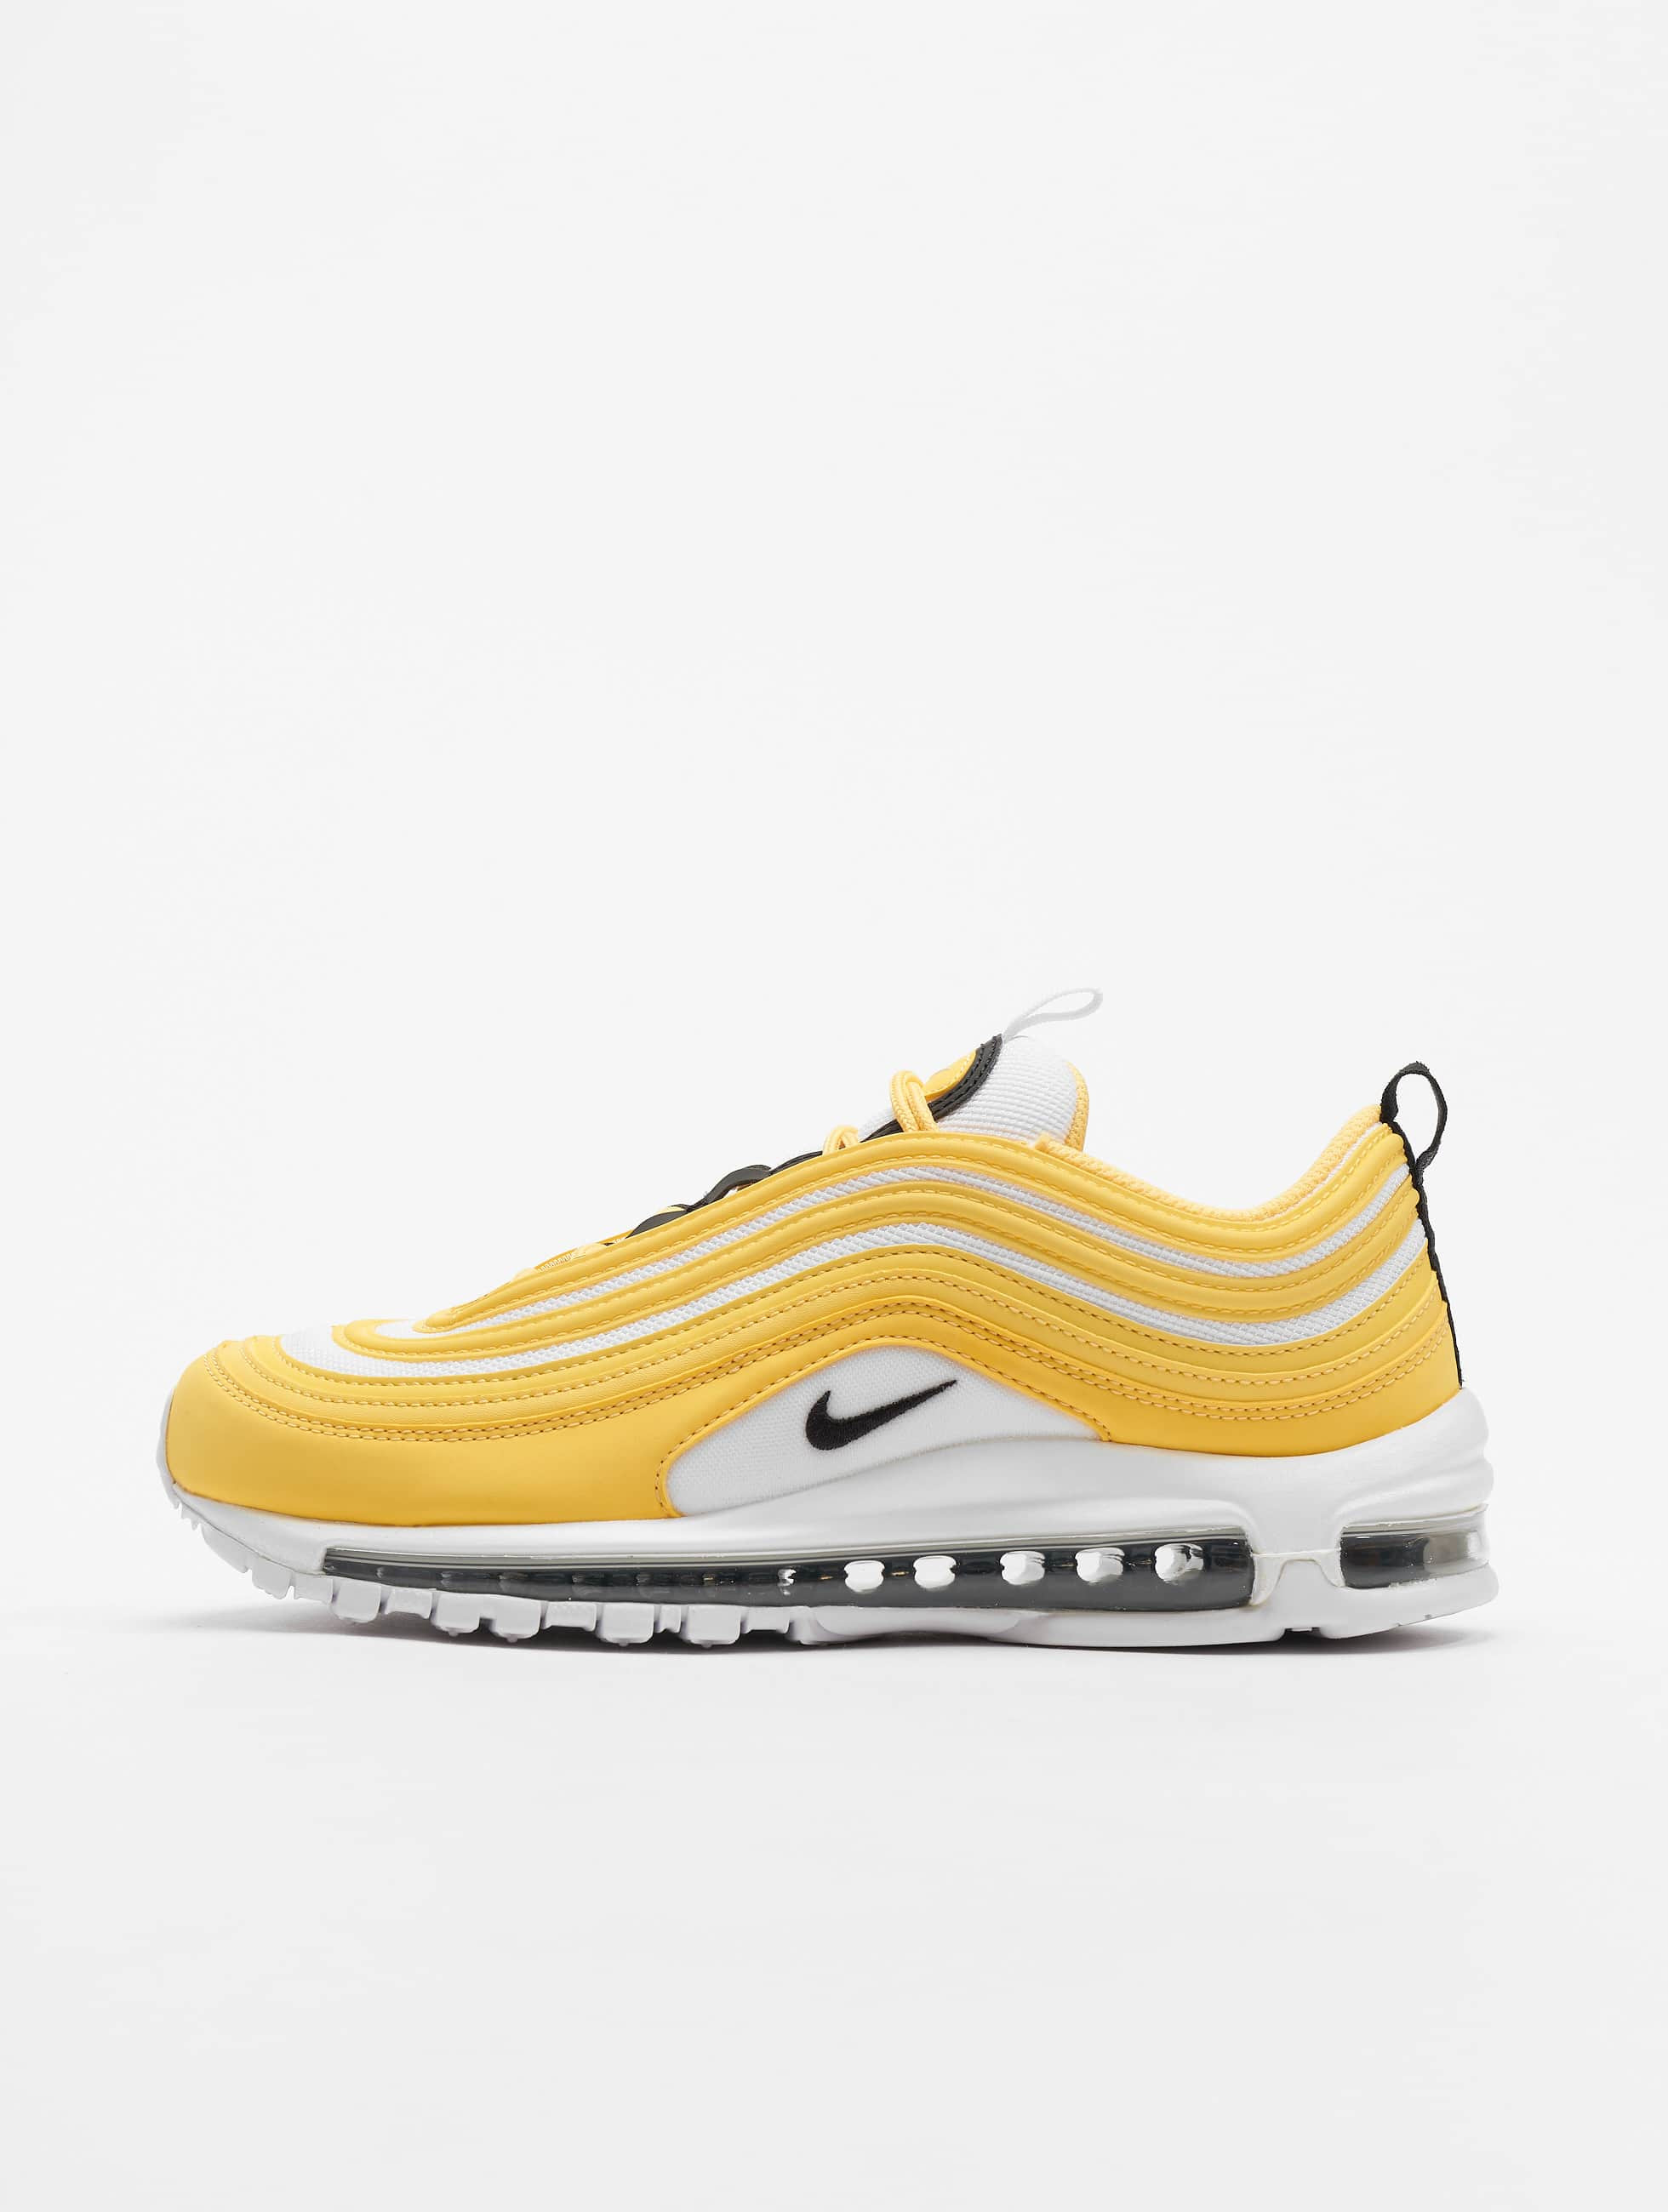 Nike Air Max 97 Sneakers Topaz Golden/Black/White